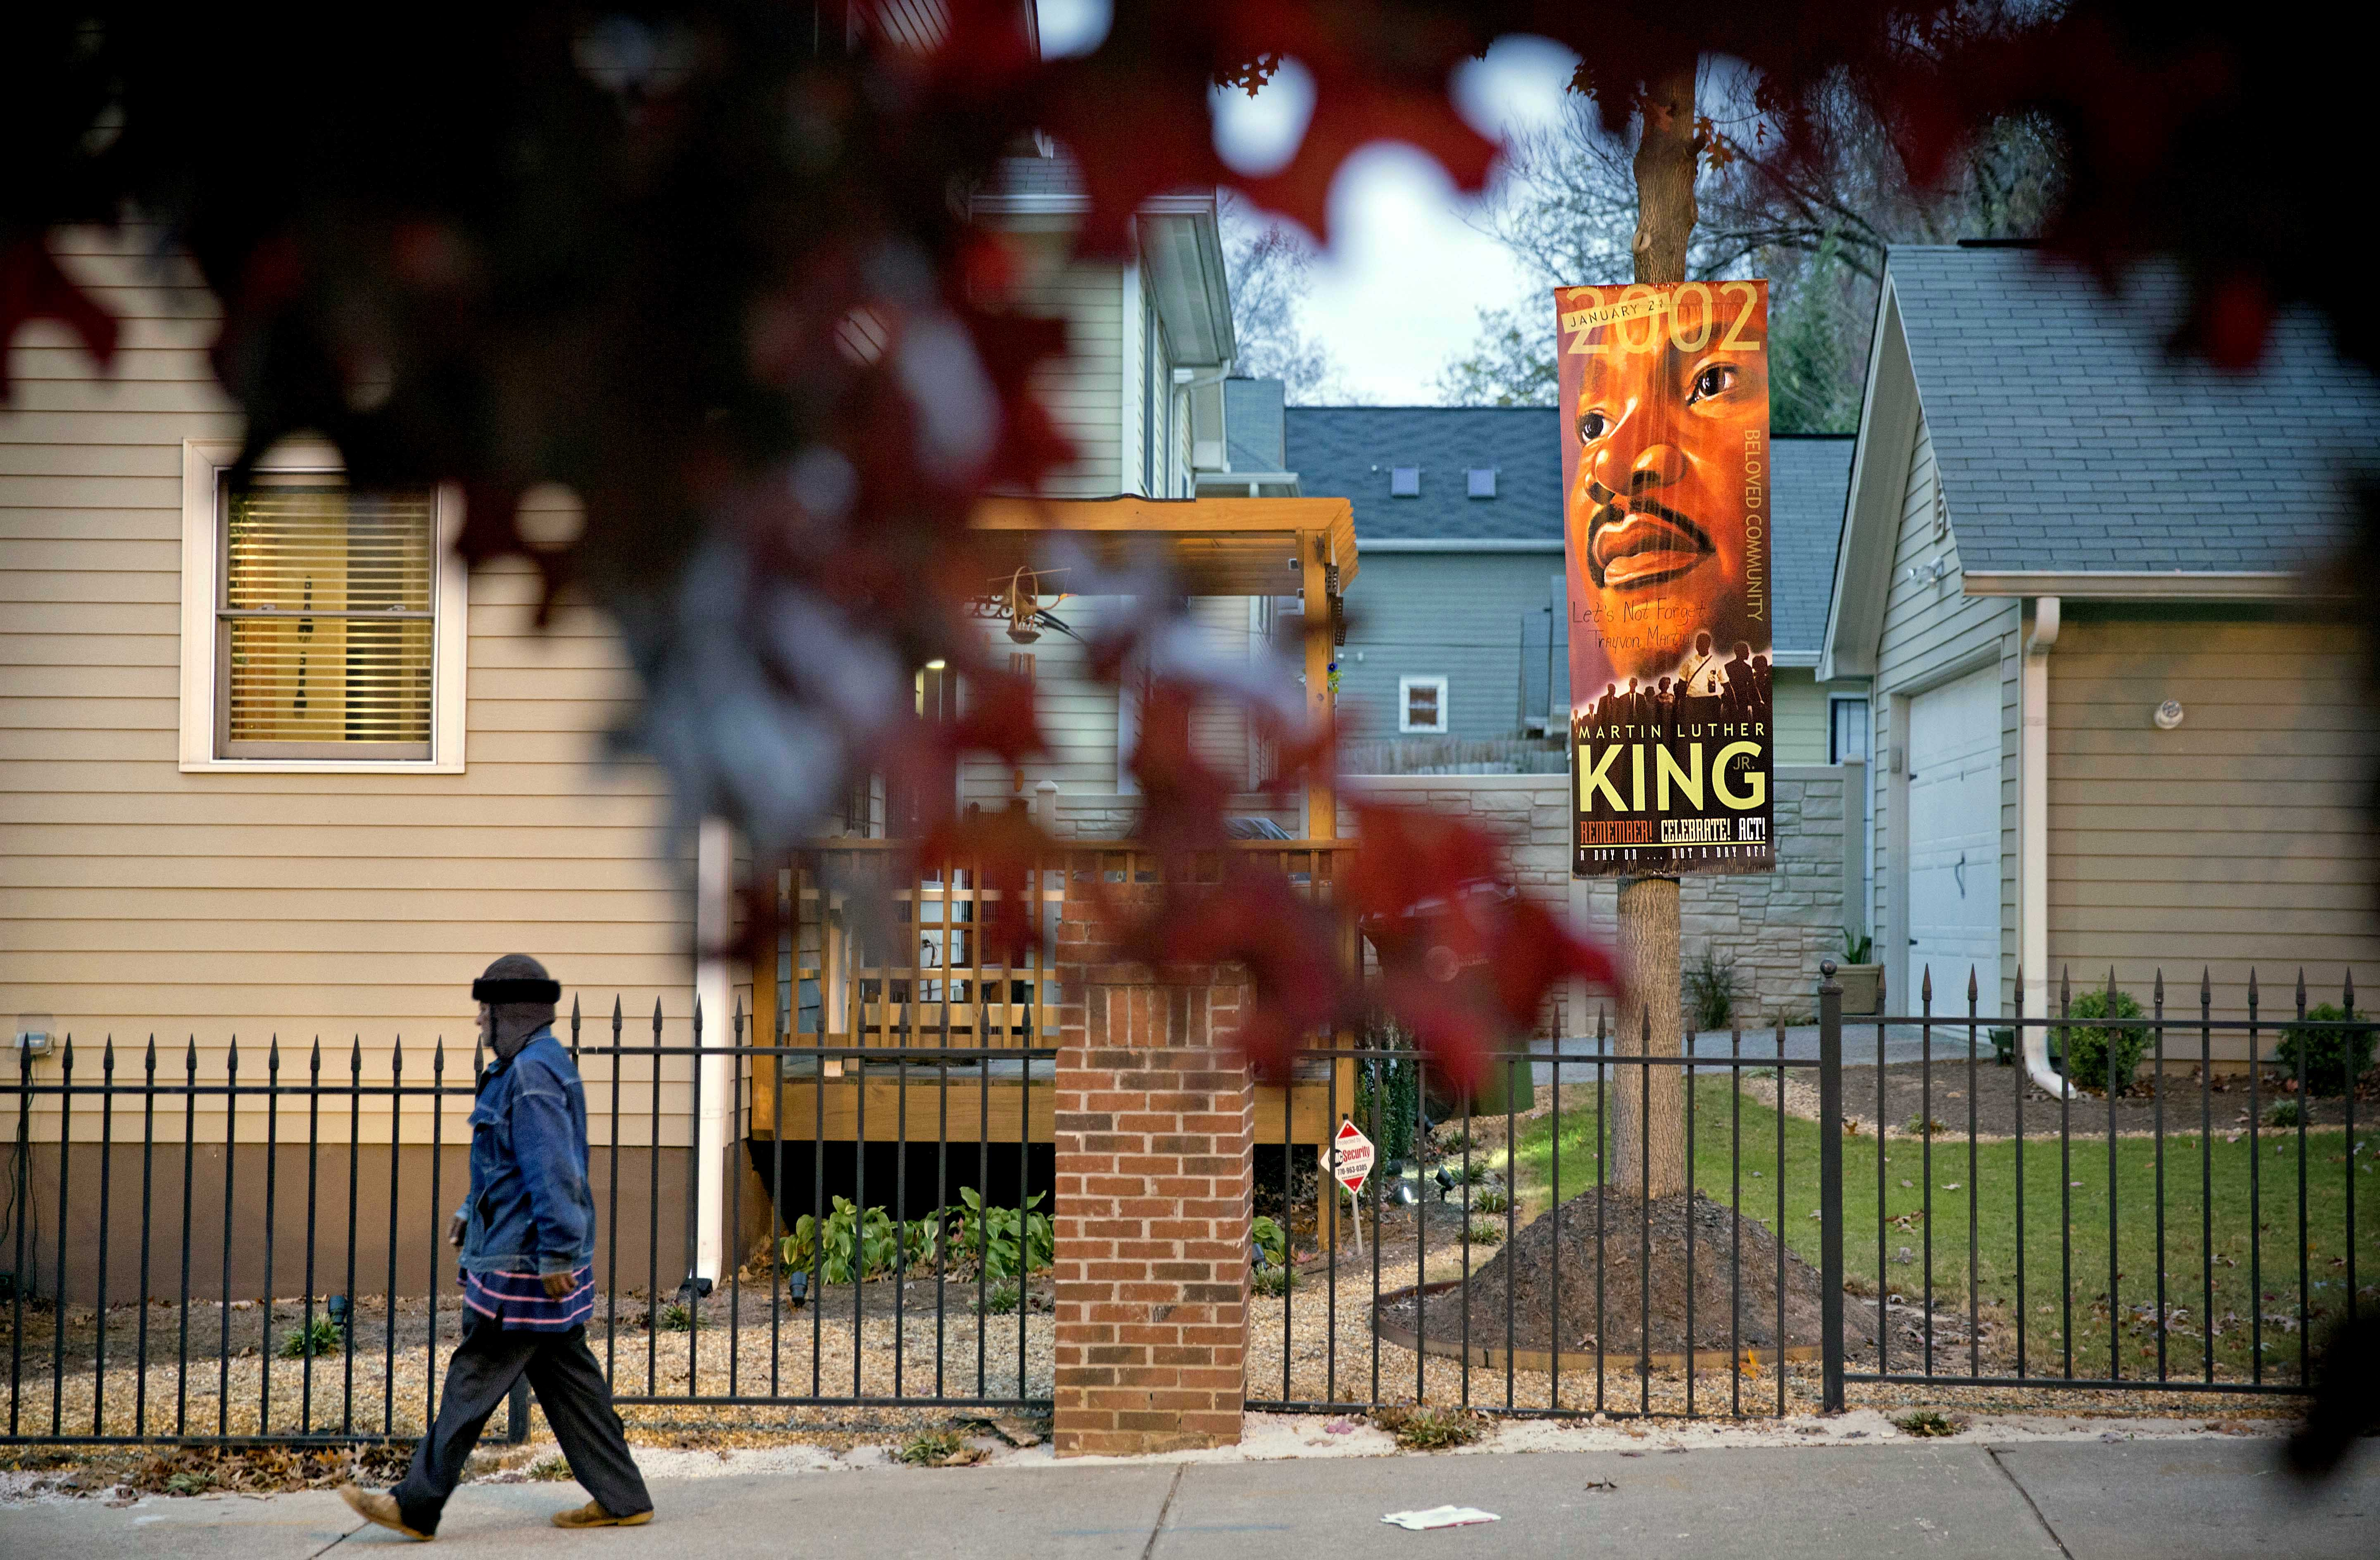 A man walks past a banner of civil rights leader Rev. Martin Luther King Jr., while walking through the Mechanicsville neighborhood surrounding the Atlanta Braves stadium, Wednesday, Nov. 20, 2013, in Atlanta. For the Braves, abandoning downtown Atlanta for the suburbs means moving closer to the team's fan base and developing money-making restaurants and amenities. Team officials say it's simply good business. But the decision also highlights long-standing disparities over wealth, where people live and even transportation, all facets of life connected to race and social class in Atlanta. The Braves will be moving from an area that's predominantly black and relatively poor compared to whiter Cobb County, where the team says more ticket-buyers live. Although it is long past segregation, the hometown of slain civil rights leader Martin Luther King is far from integrated, and the city's politics, business and even sports teams reflect that gap. (AP Photo/David Goldman)